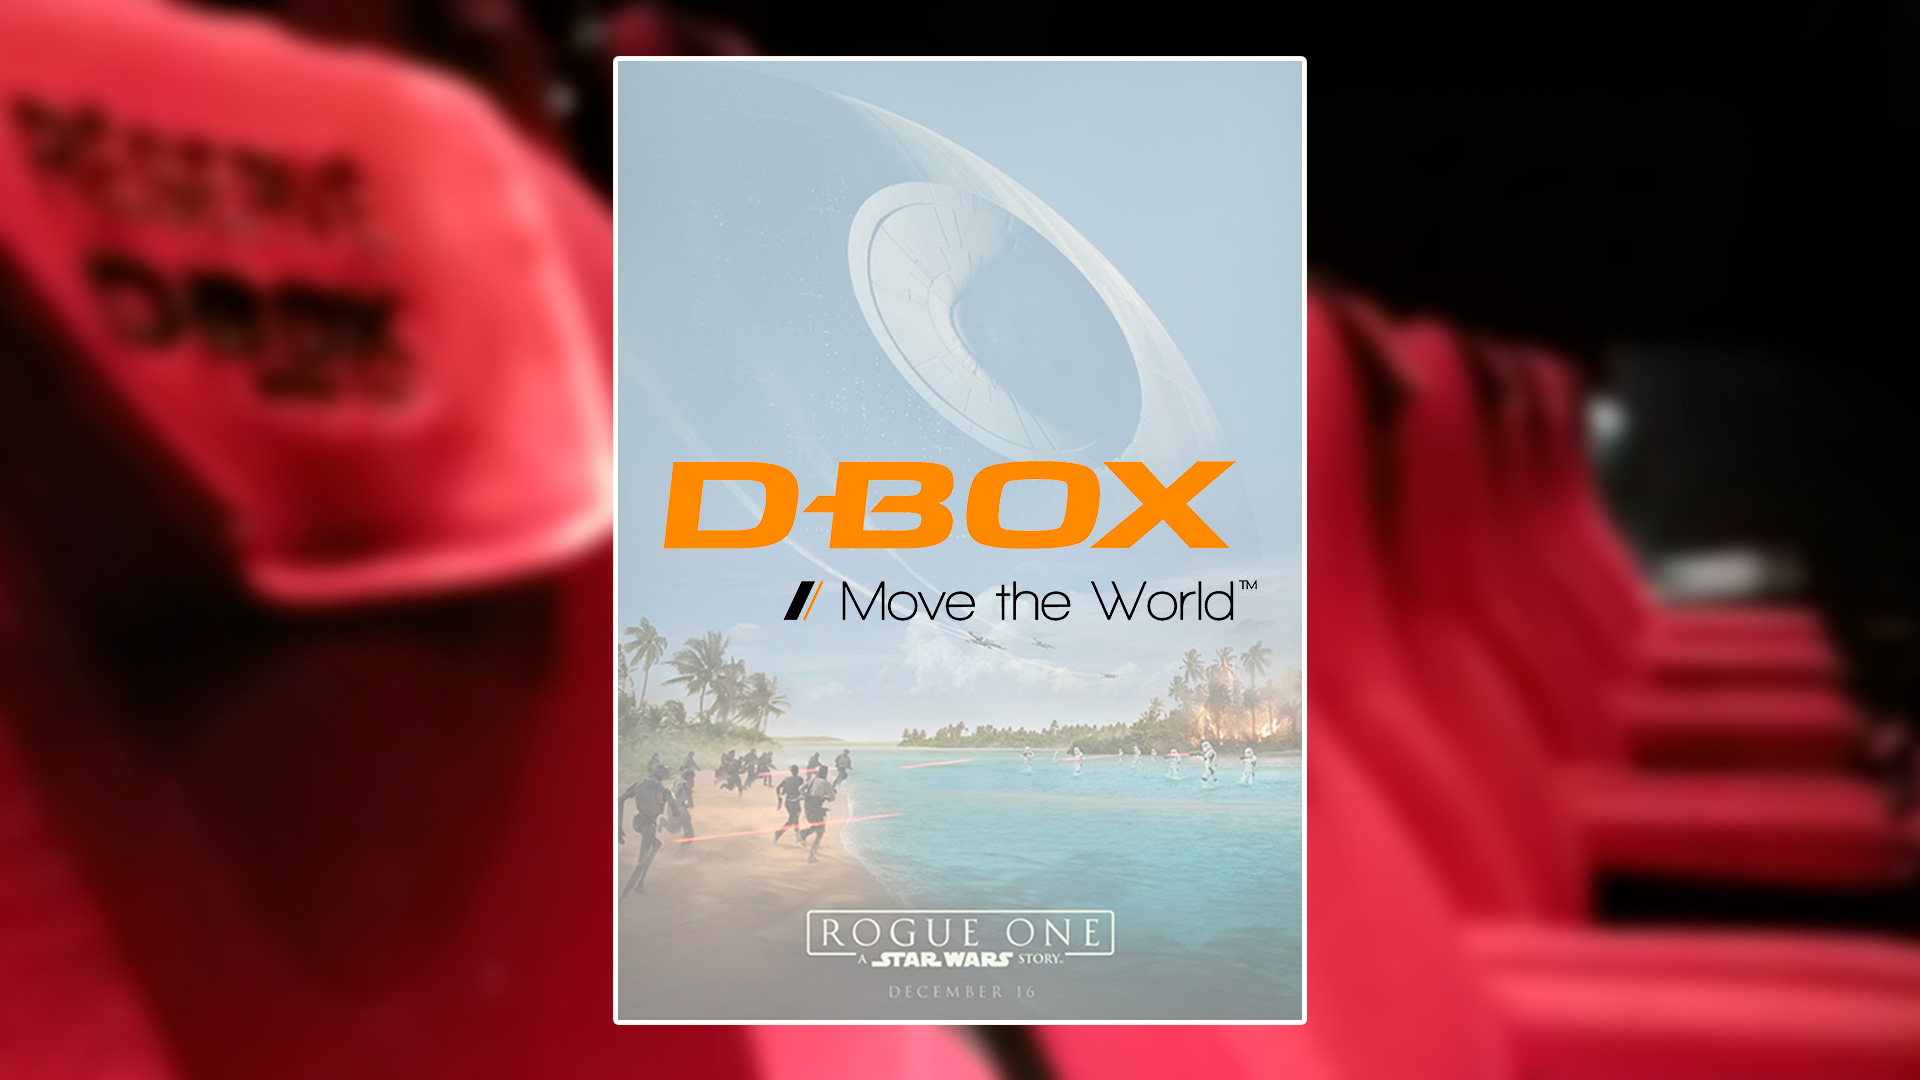 Rogue One - D-Box